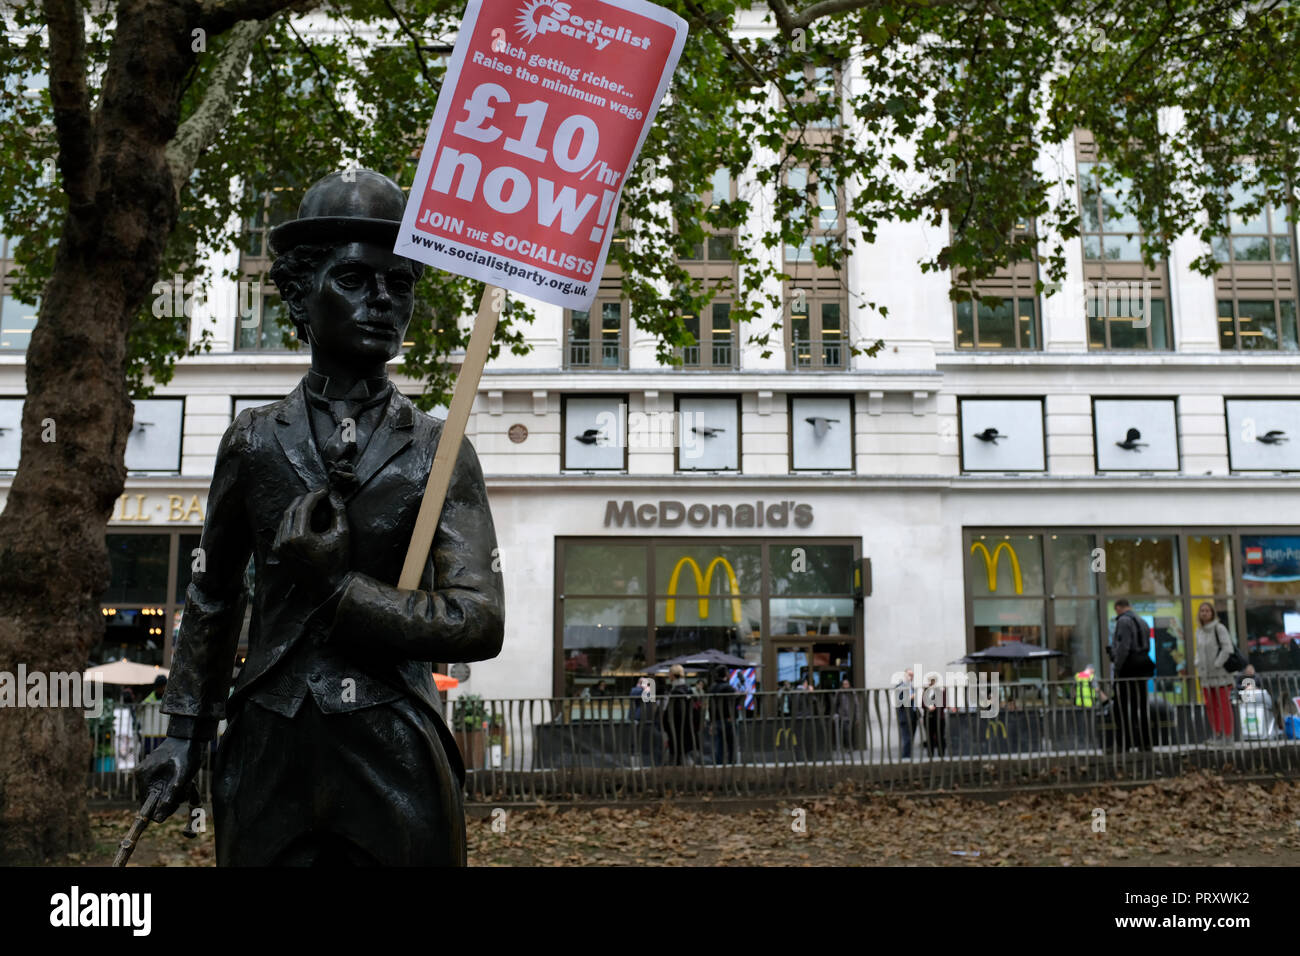 A Charles Chaplin sculpture seen holding a poster saying £10/hr Now! during the protest. Wetherspoons, TGI Fridays, and McDonald's workers rally together in London to demand better working conditions and a fair pay in the hospitality industry. - Stock Image